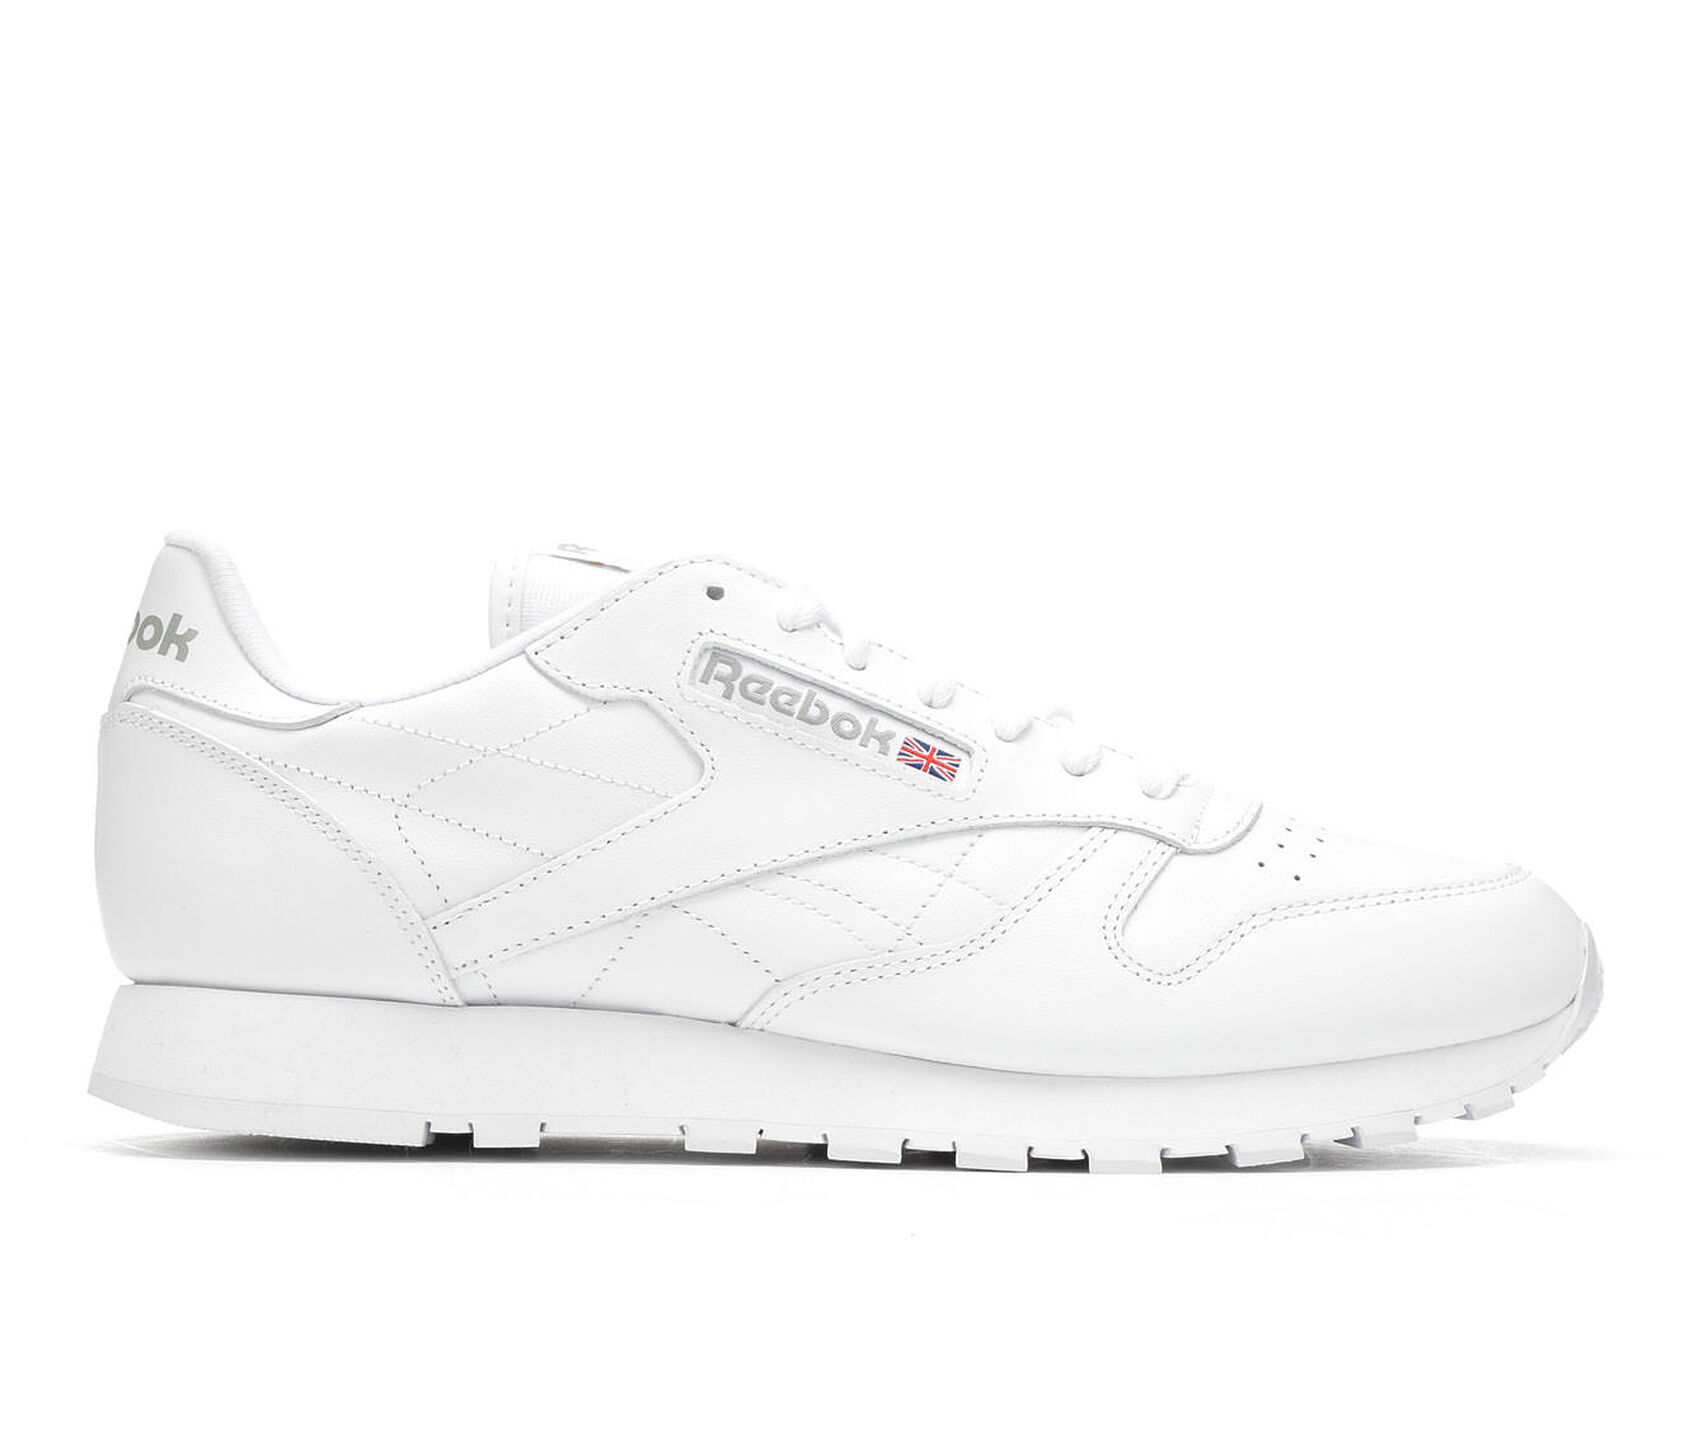 sells authentic quality wholesale online Men's Reebok Classic Leather Retro Sneakers